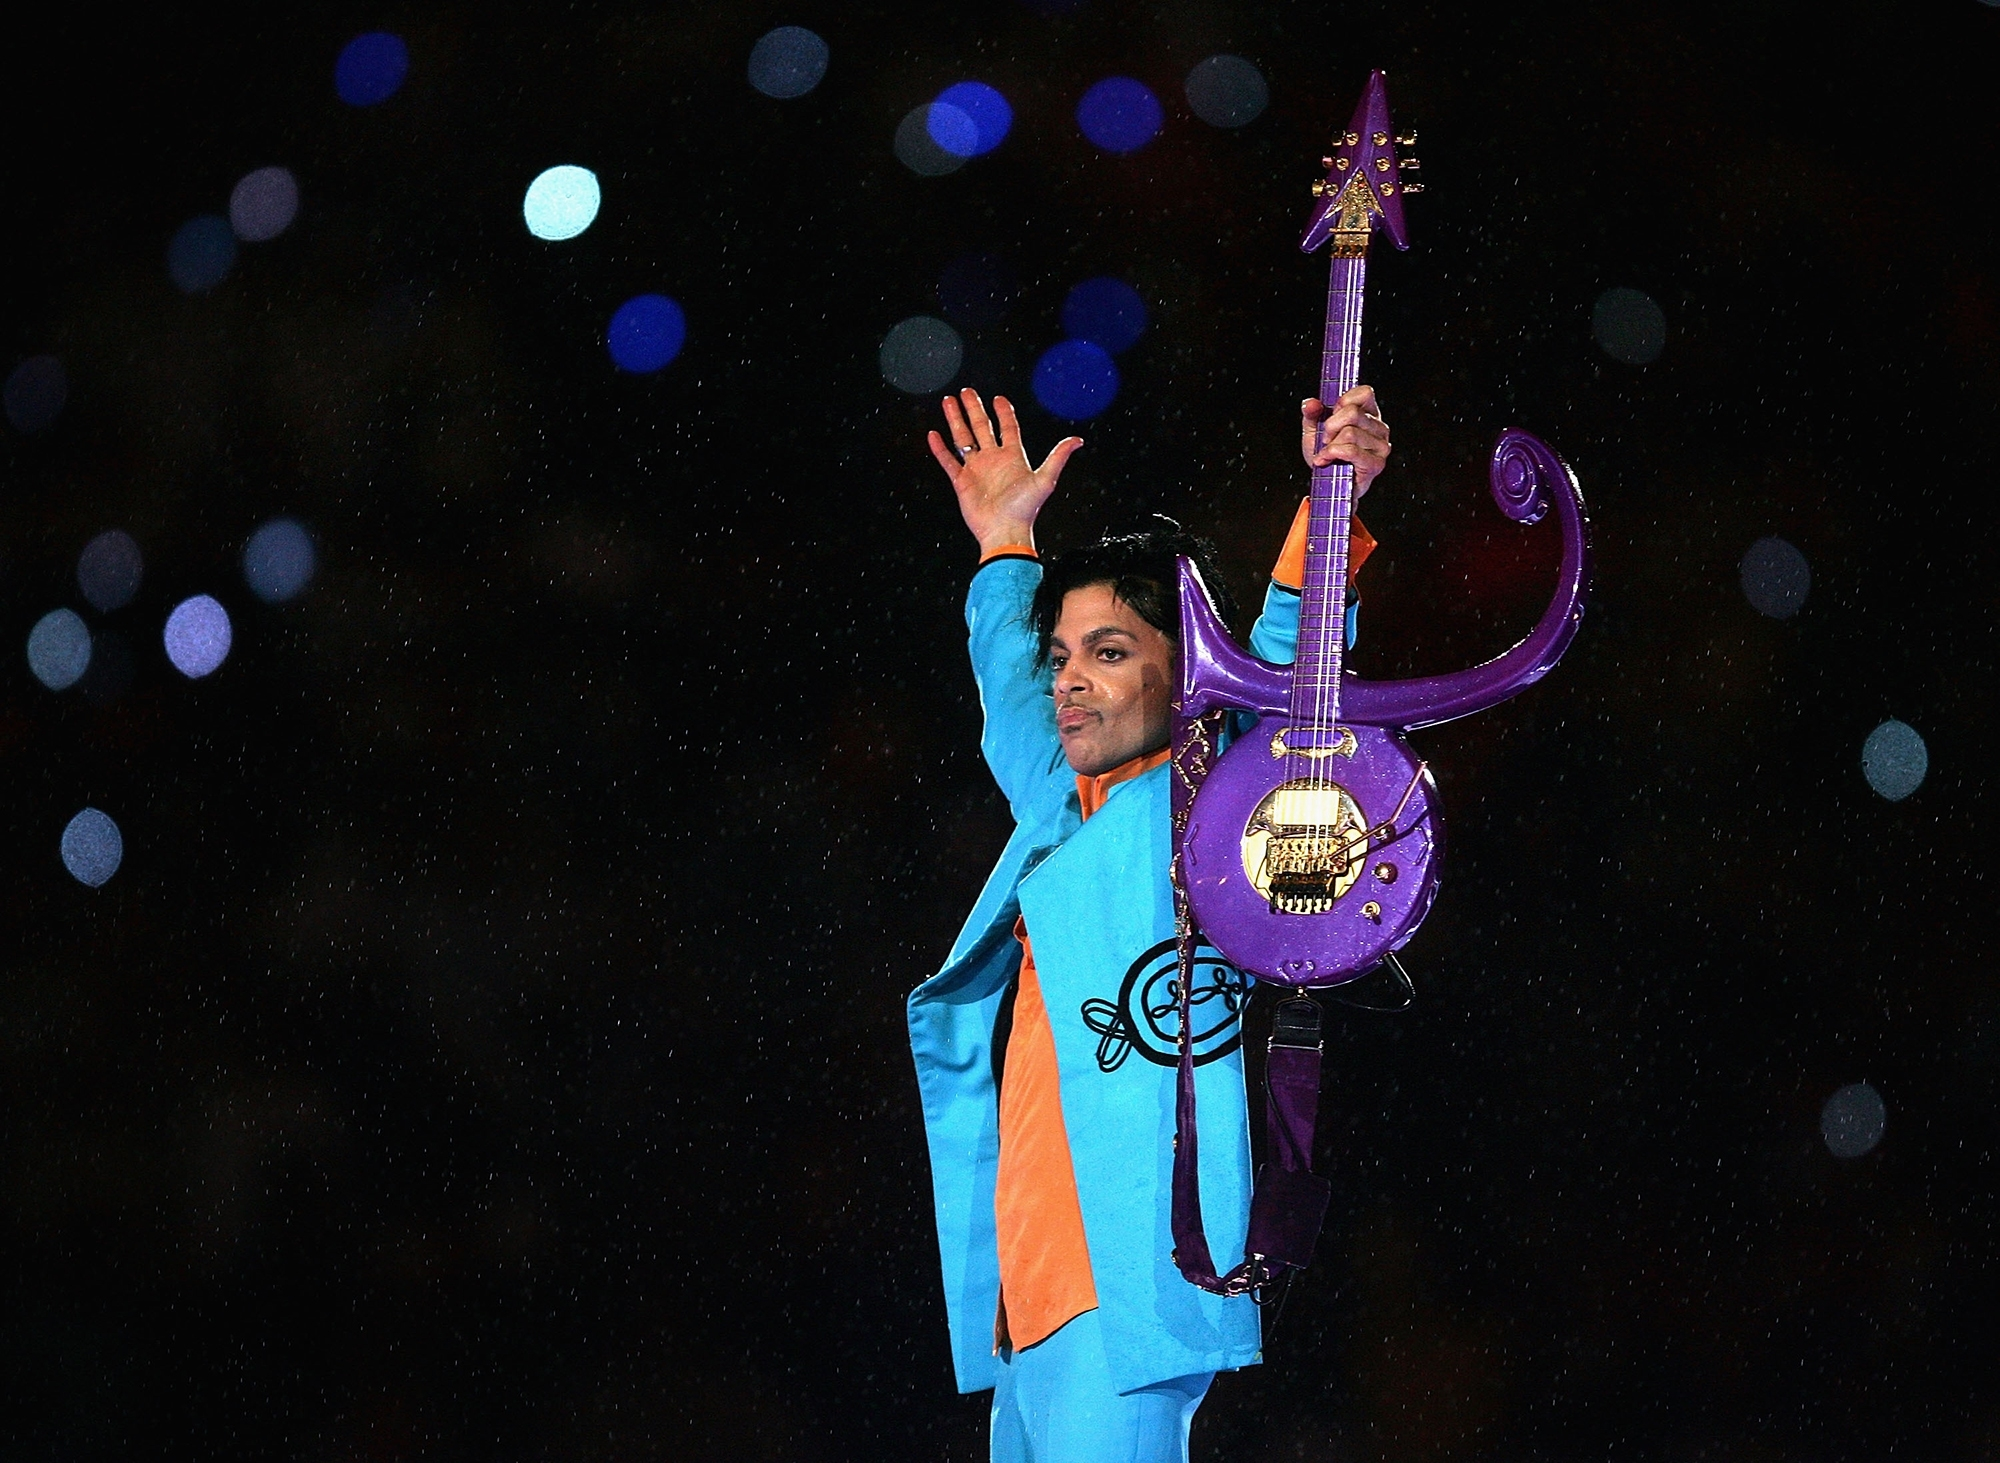 Prince 2007 Super Bowl Performance Behind The Scenes | Time regarding Purple Rain Super Bowl